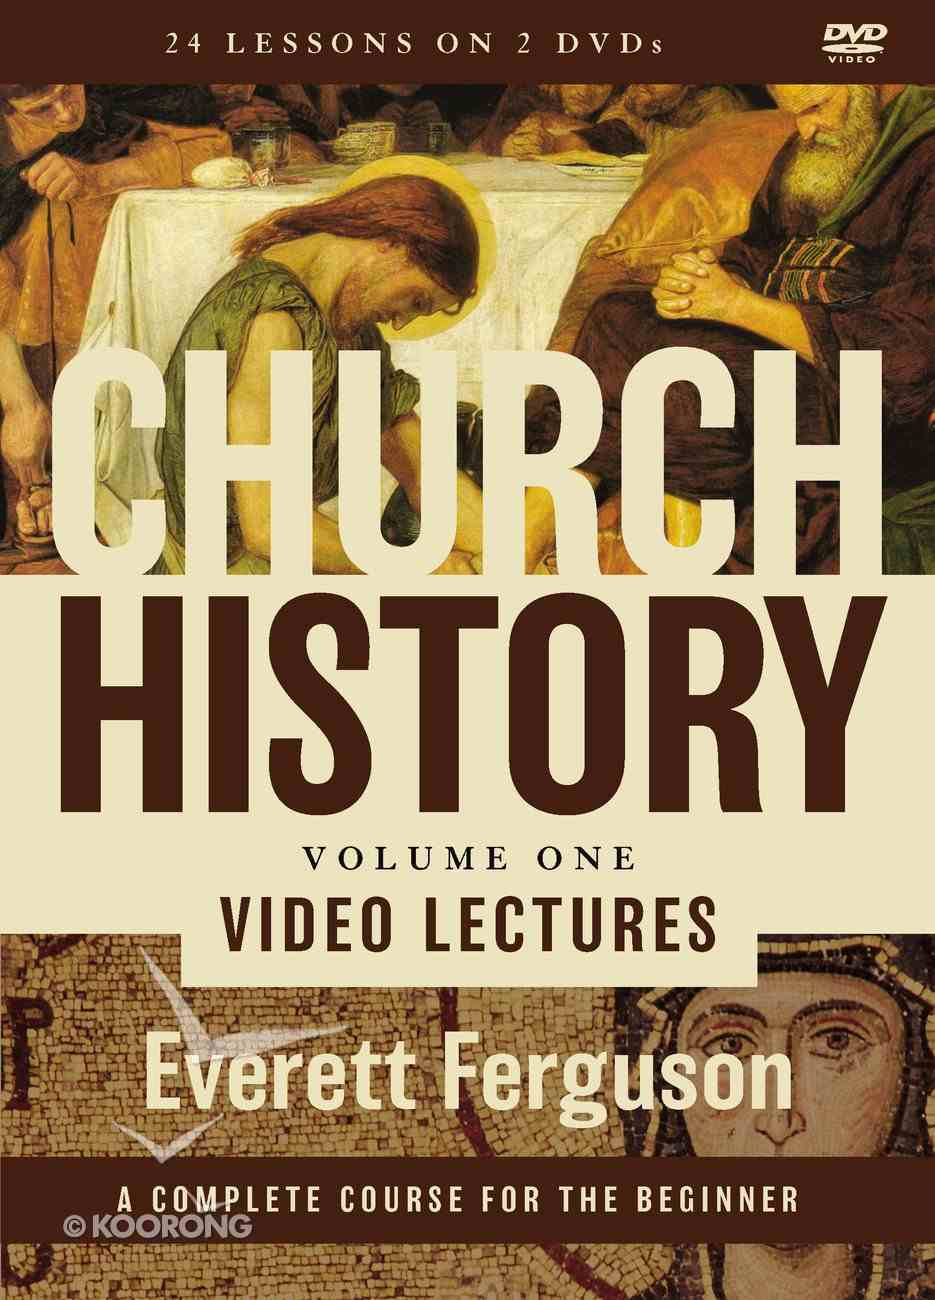 Church History, Volume One Video Lectures DVD